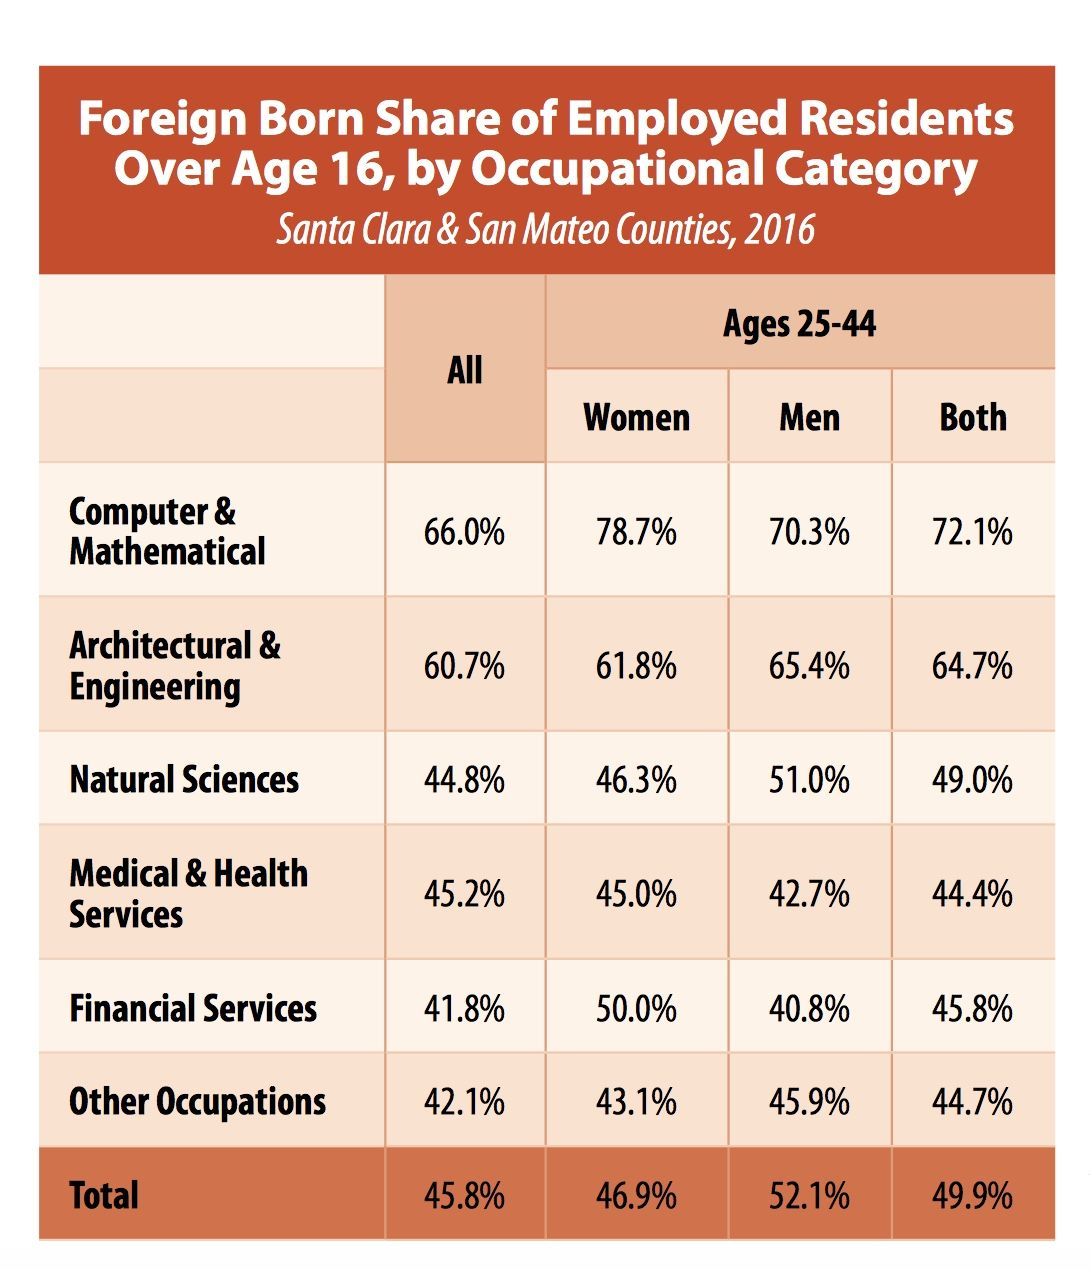 Chart showing percentage of foreign born by occupational category